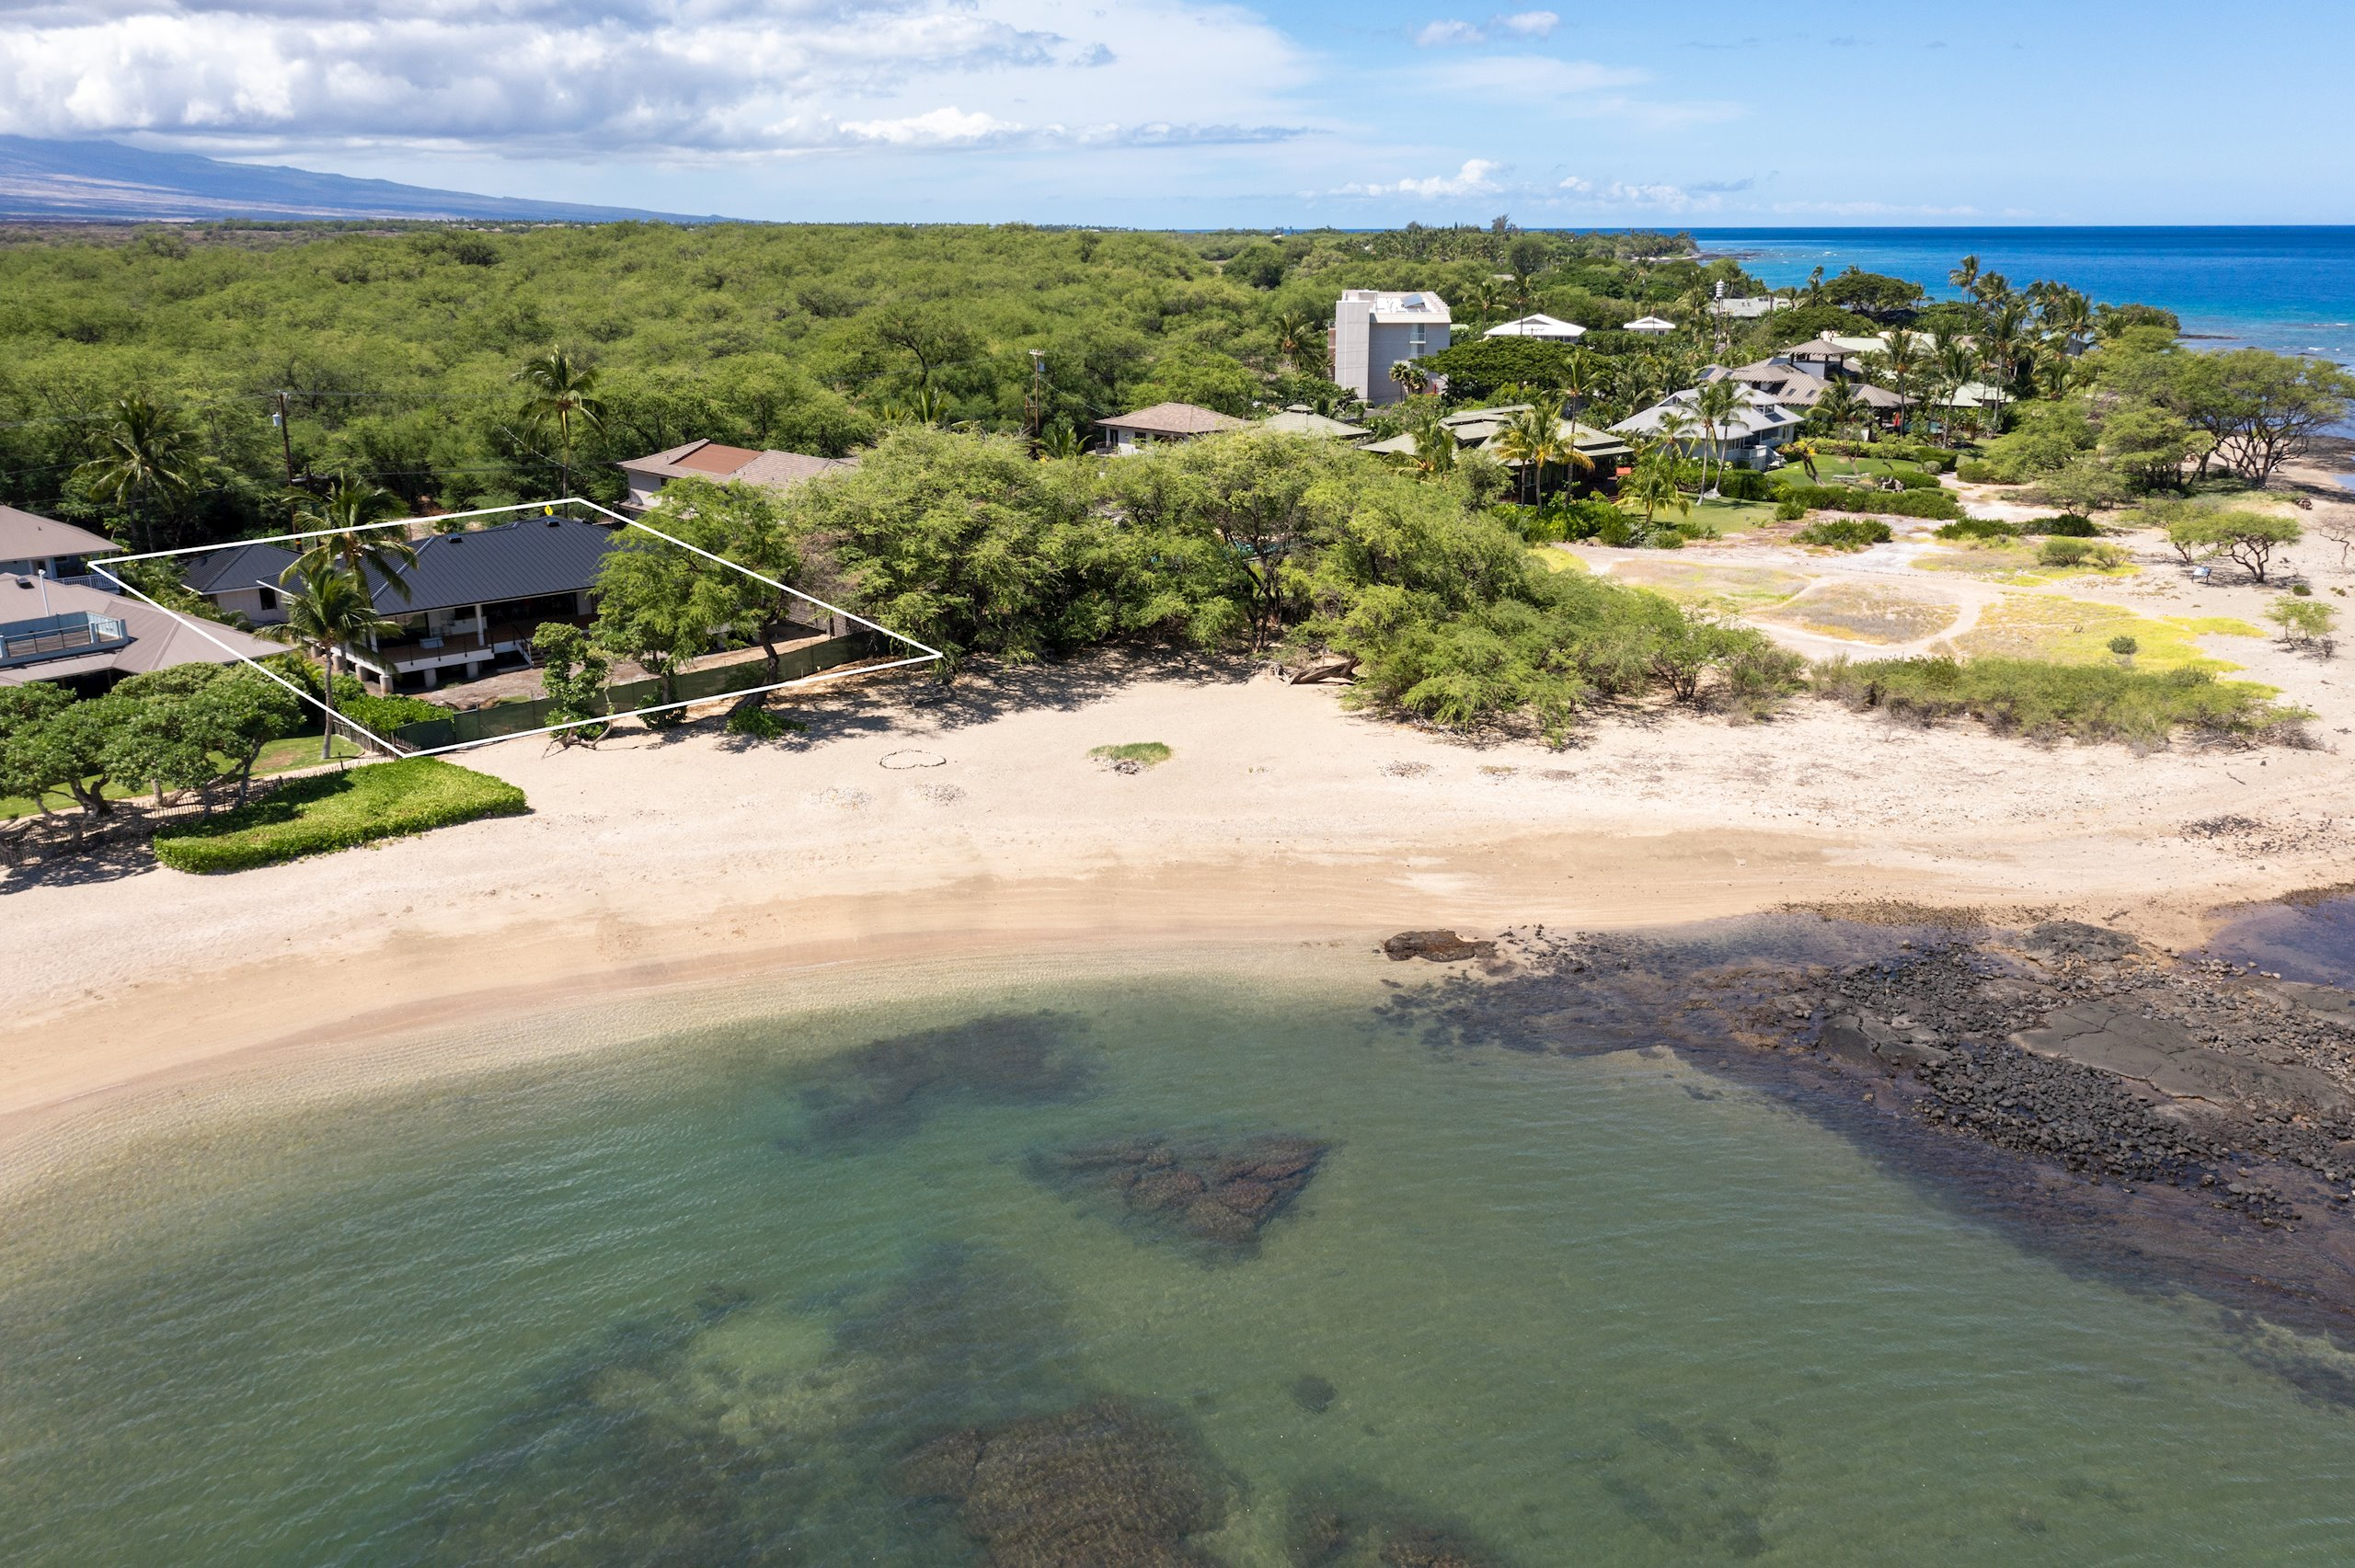 Puako is situated between the luxury 4- and 5-star resorts on the Gold Coast of the Big Island of Hawaii: the newer Mauna Lani Auberg...